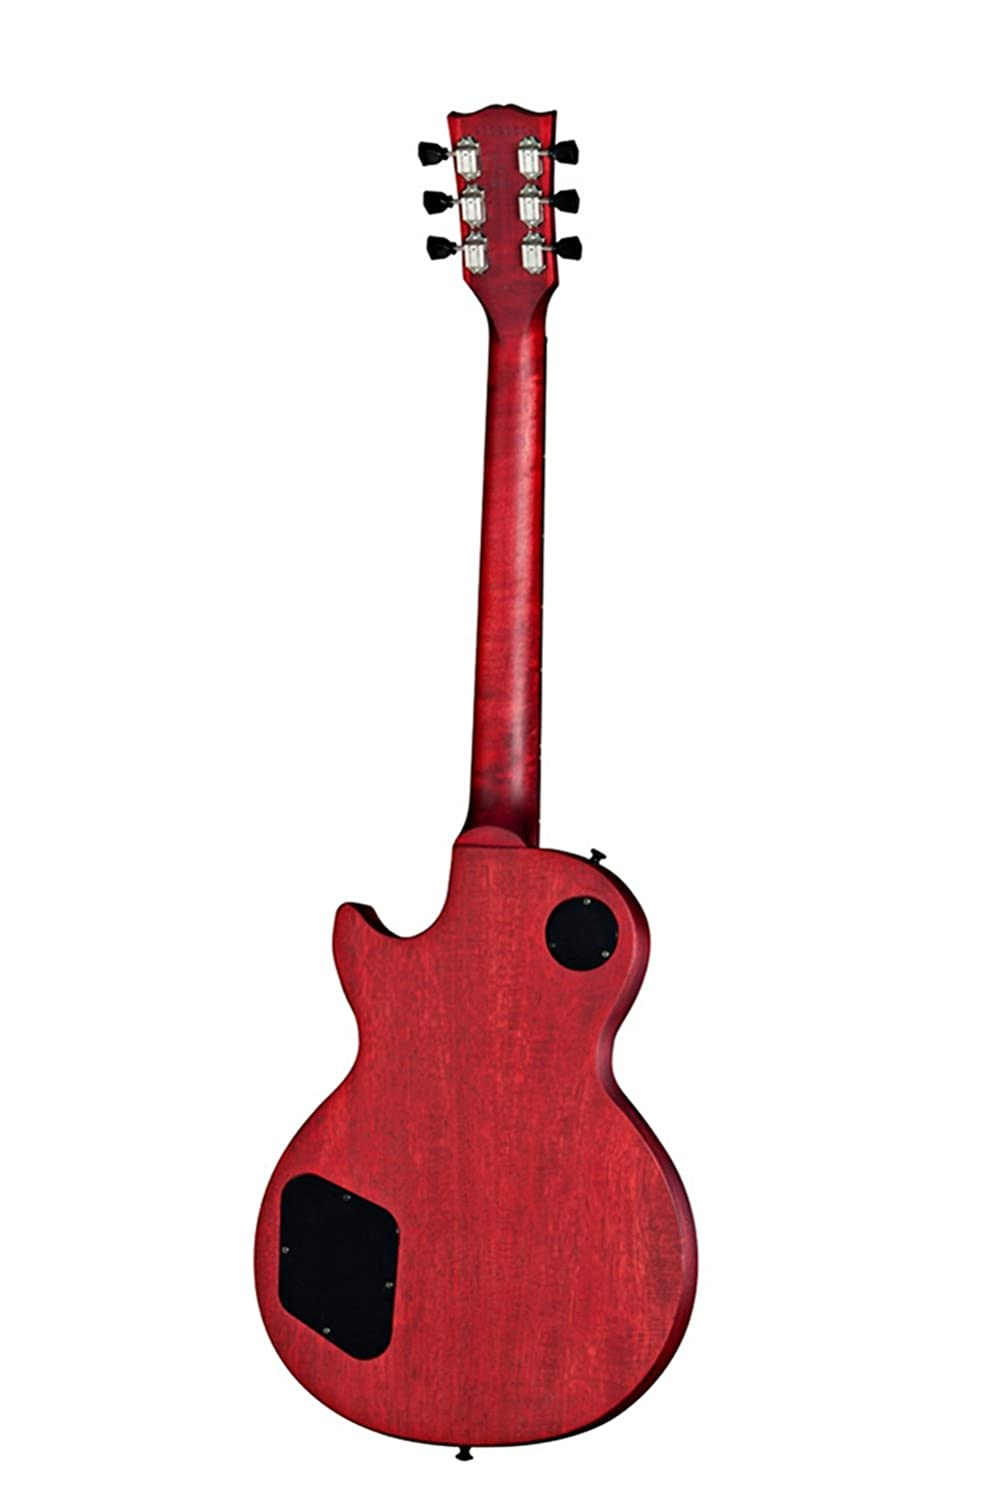 Gibson Les Paul Lpj Guitar Cherry Satin Musical Instruments Board Updating The Electronics With A Pcb Do I Clip